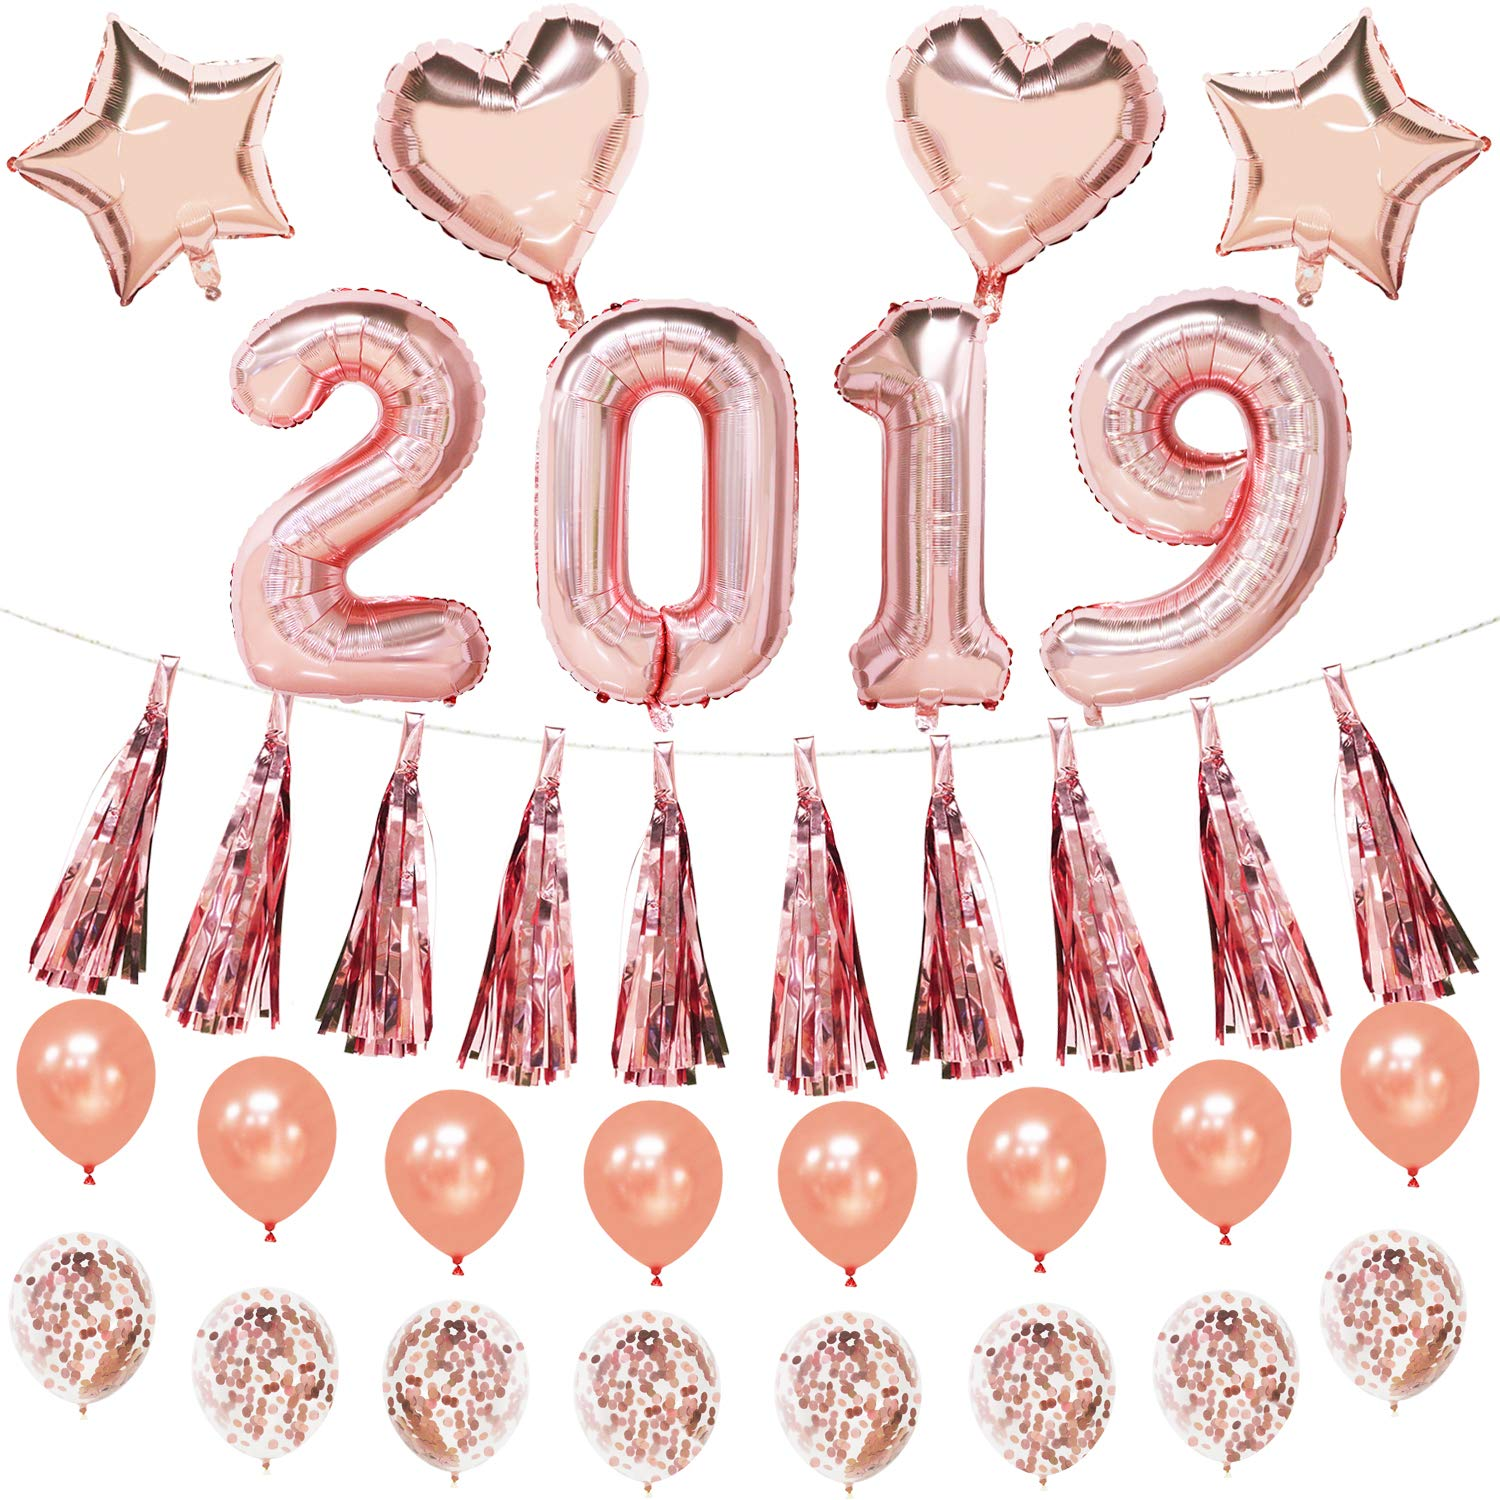 Mylar Foil Heart and Star Balloons 2019 Number Balloons Rose Gold Latex and Confetti Balloons Tassel Garland Graduation and New Year Eve Party Supplies Mosoan Rose Gold Party Decorations Set